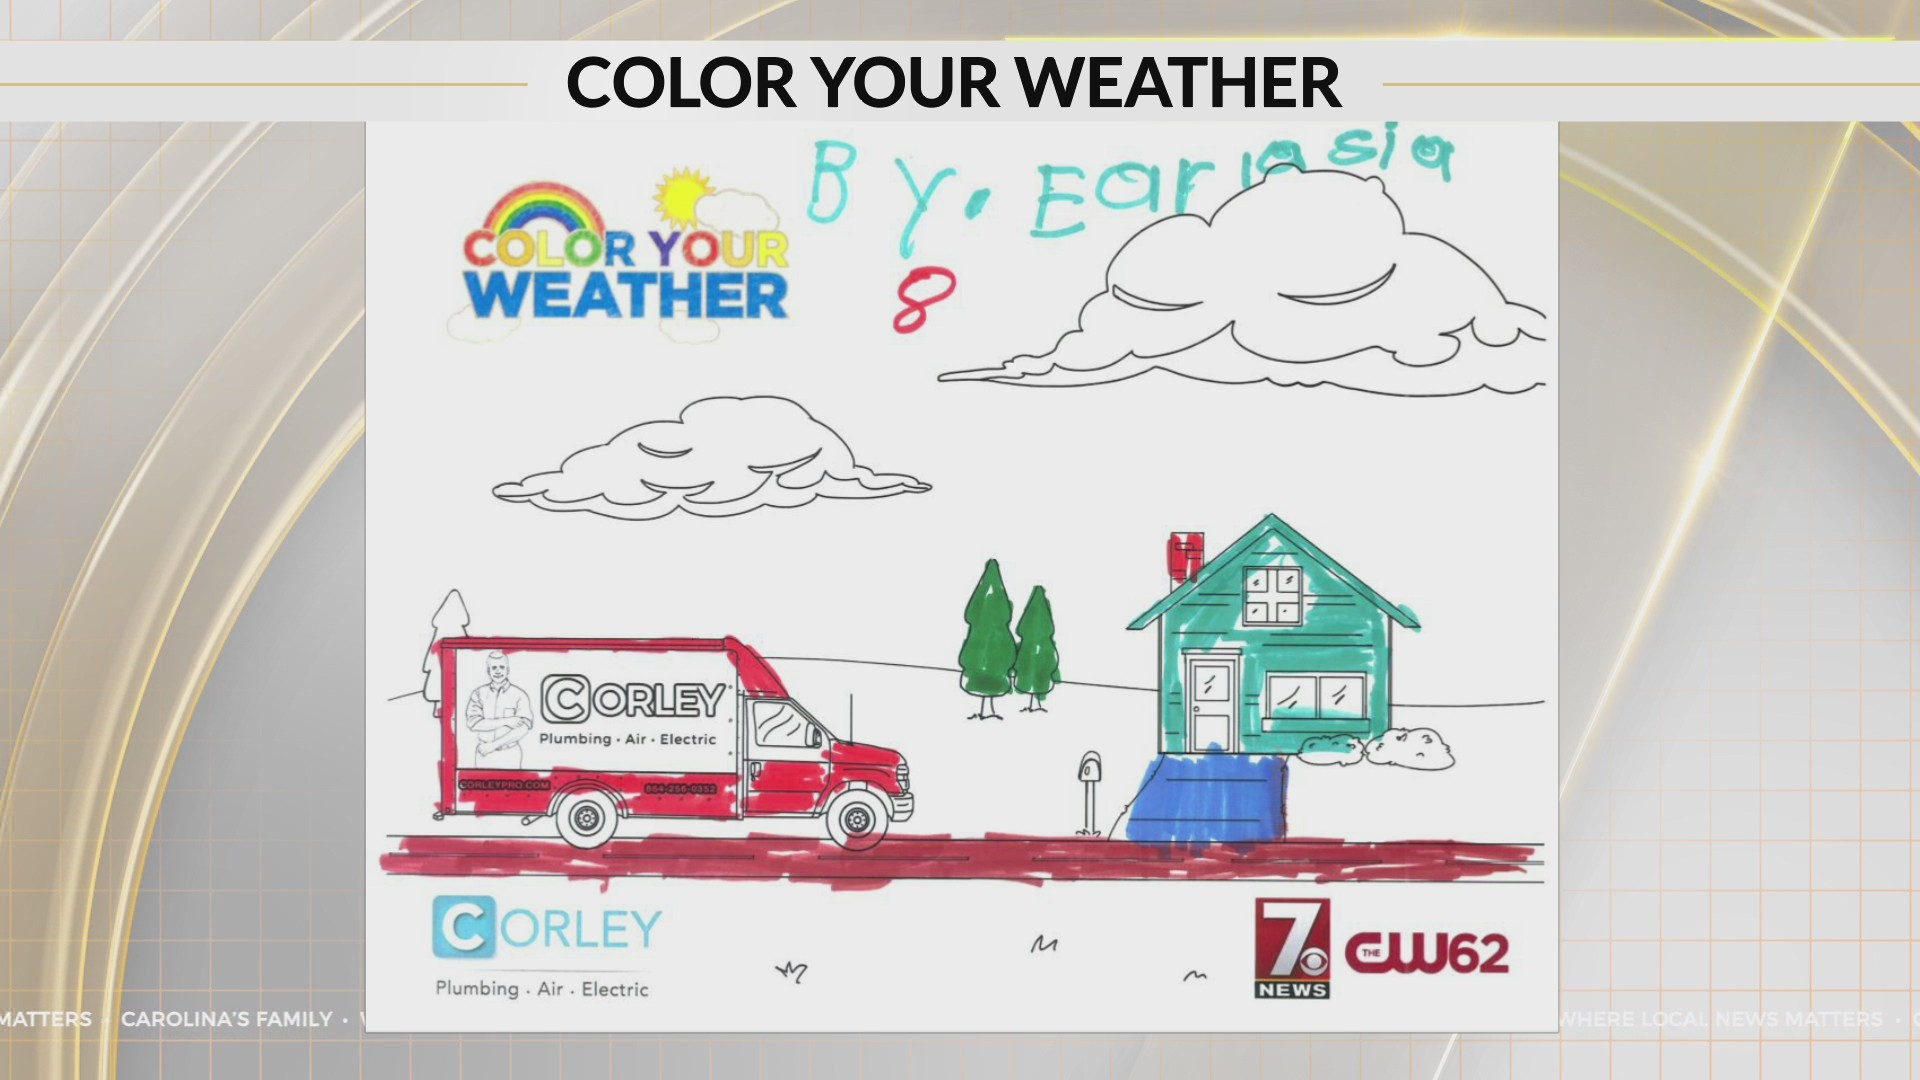 Color Your Weather: Eurasia